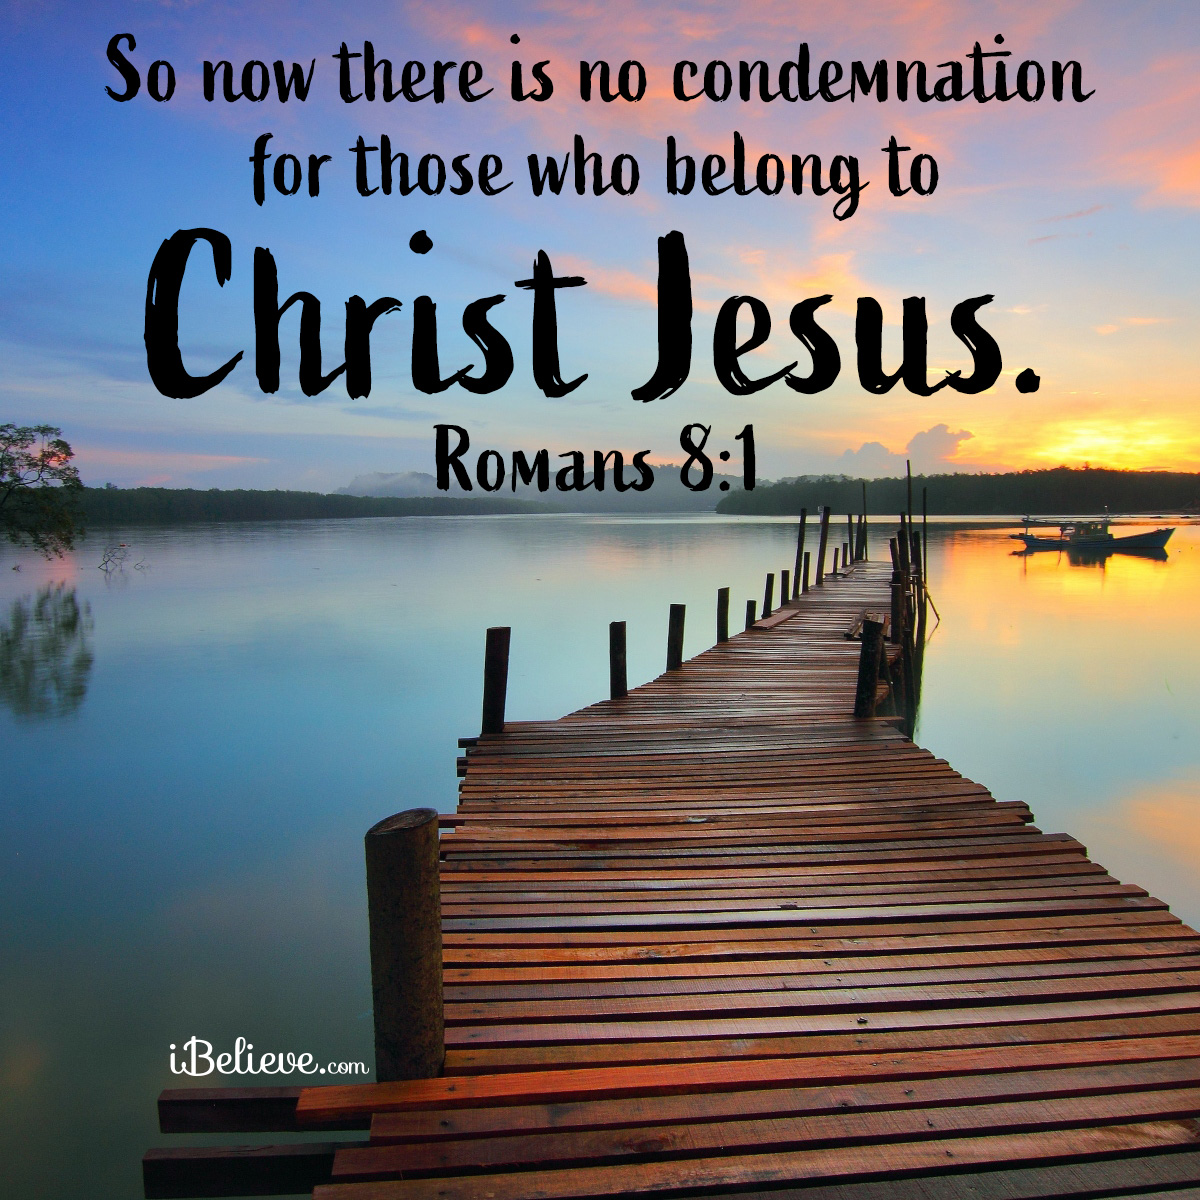 Inspirational image of Romans 8:1